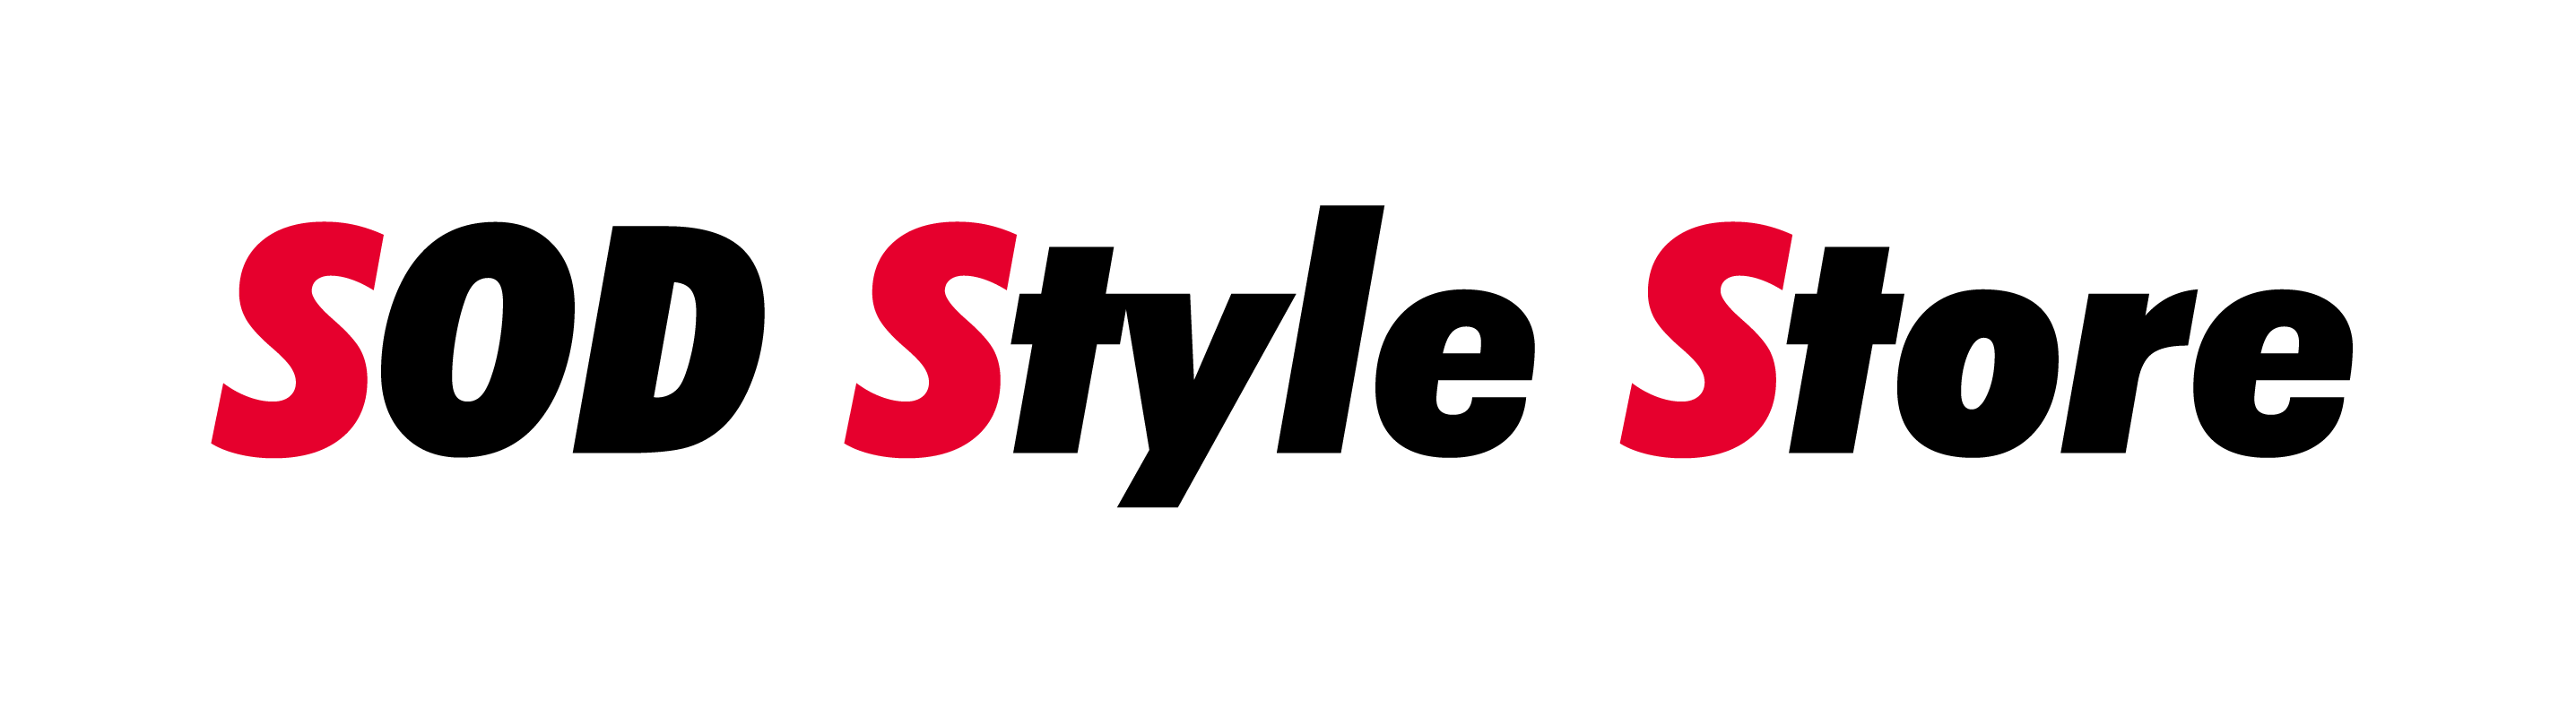 SOD Style Store